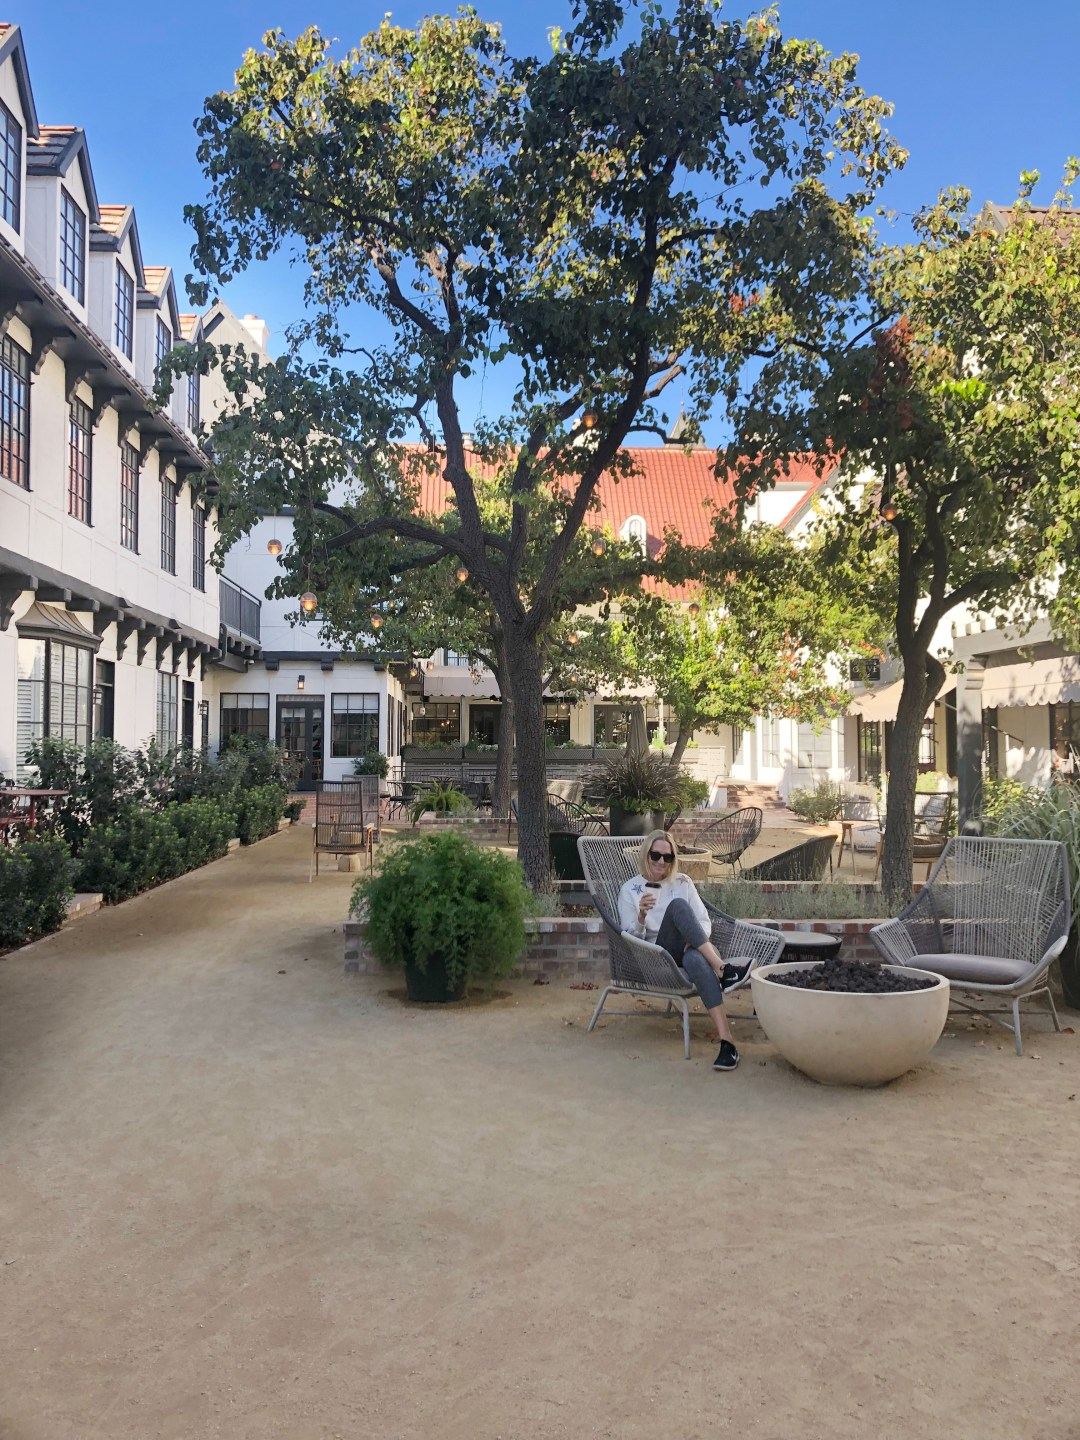 The landsby courtyard